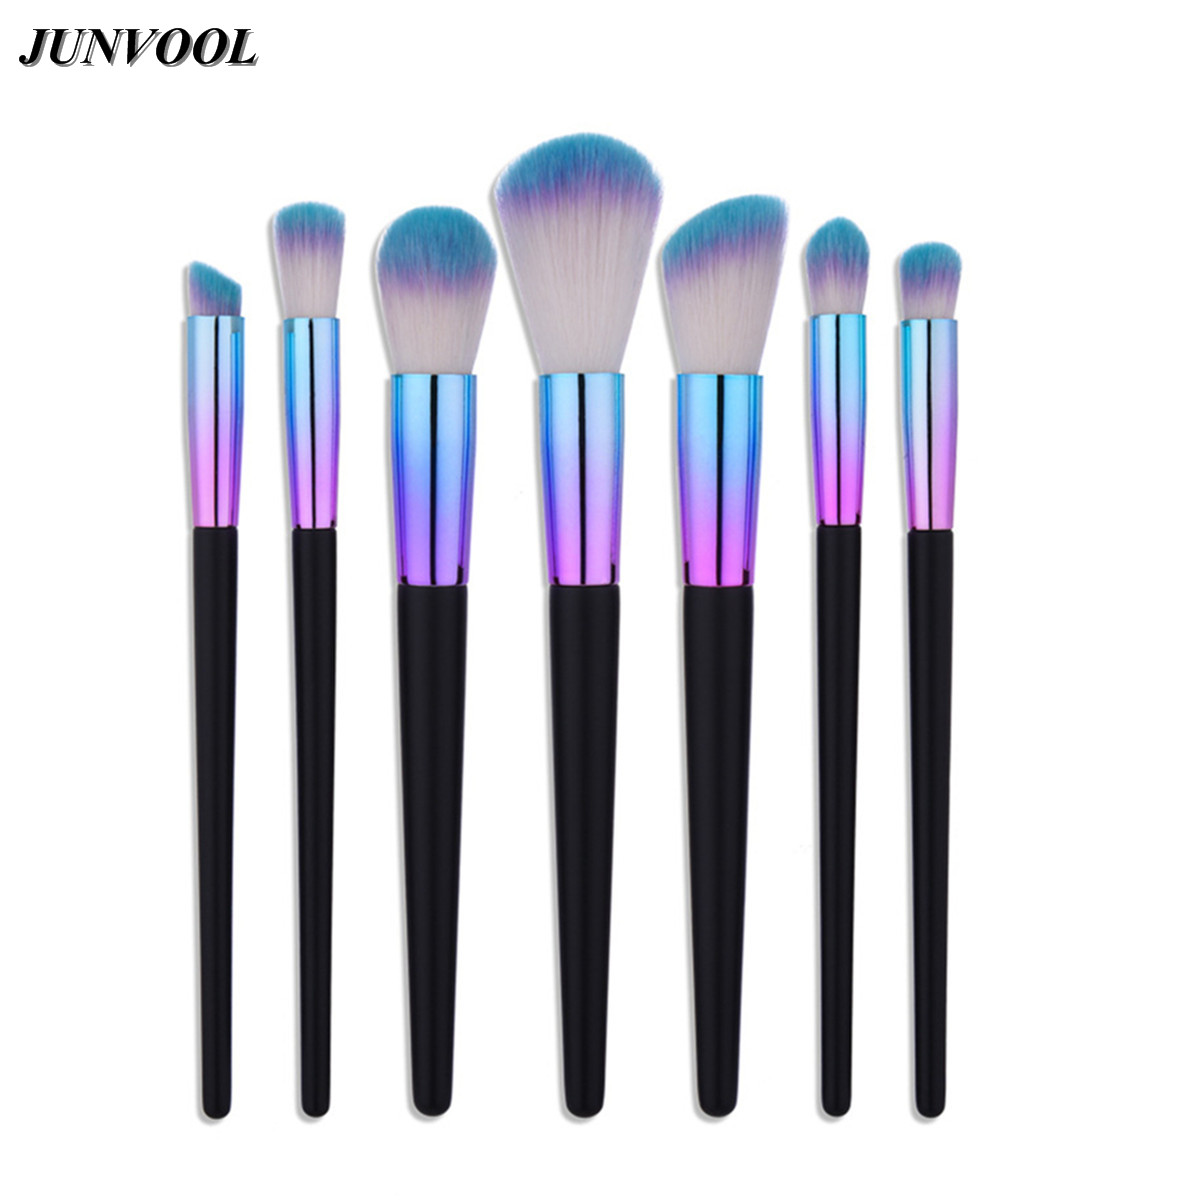 Wood Handle Makeup Brushes Set 7Pcs/set Dazzle Glitter Foundation Powder Brush Kit Rainbow Eyeshadow Lip Kabuki Beauty Tools aquarium liquid glitter brush set mermaid makeup brushes bling bling glitter handle make up brush kit pincel sereia maquiagem